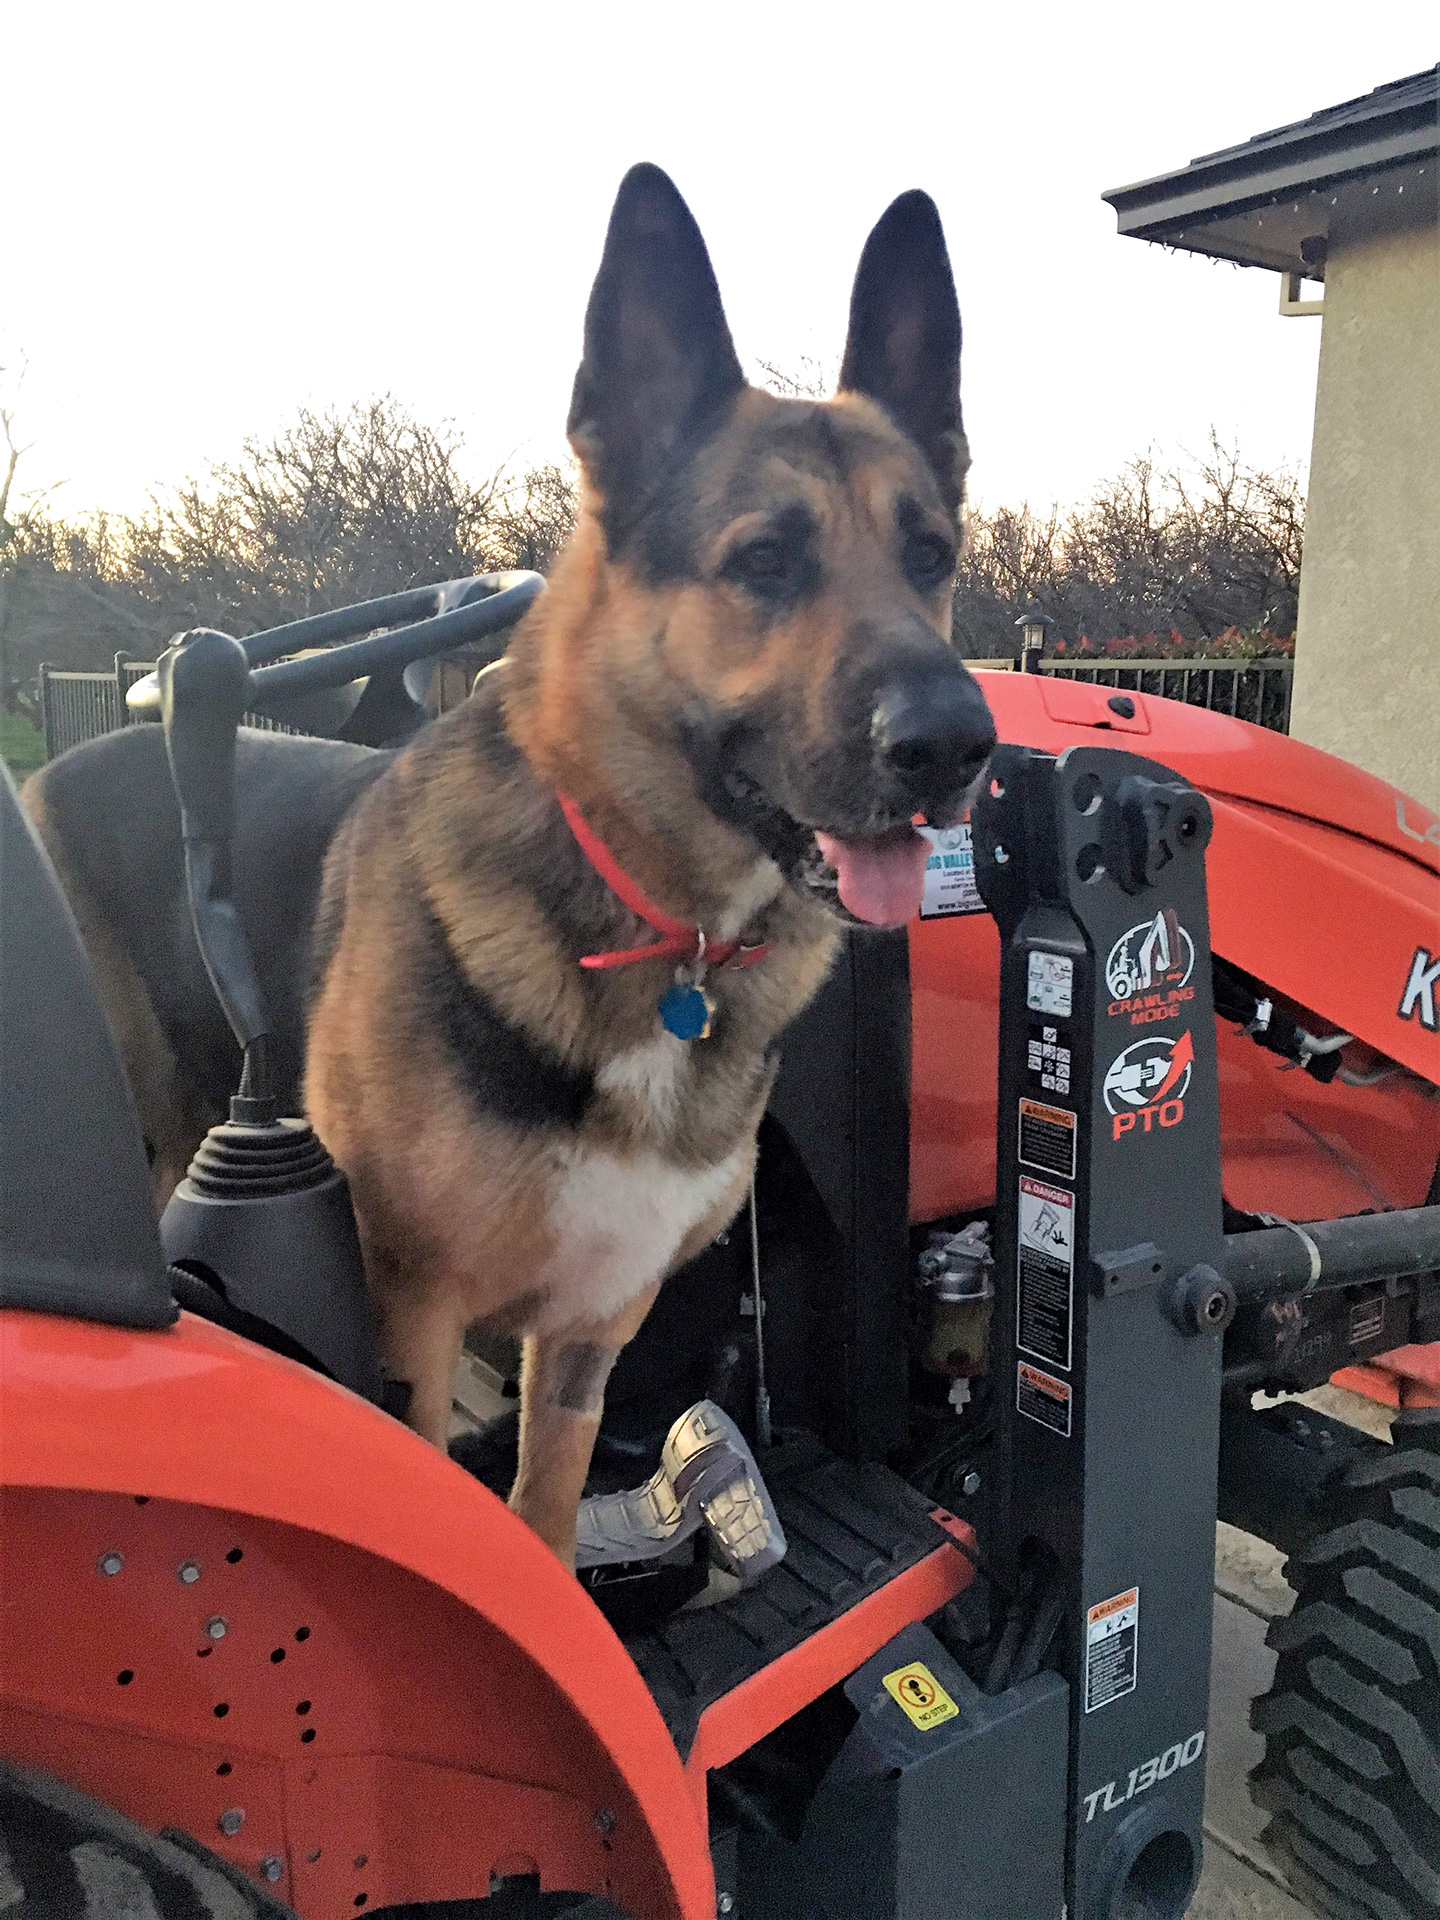 Buddy-on-Tractor